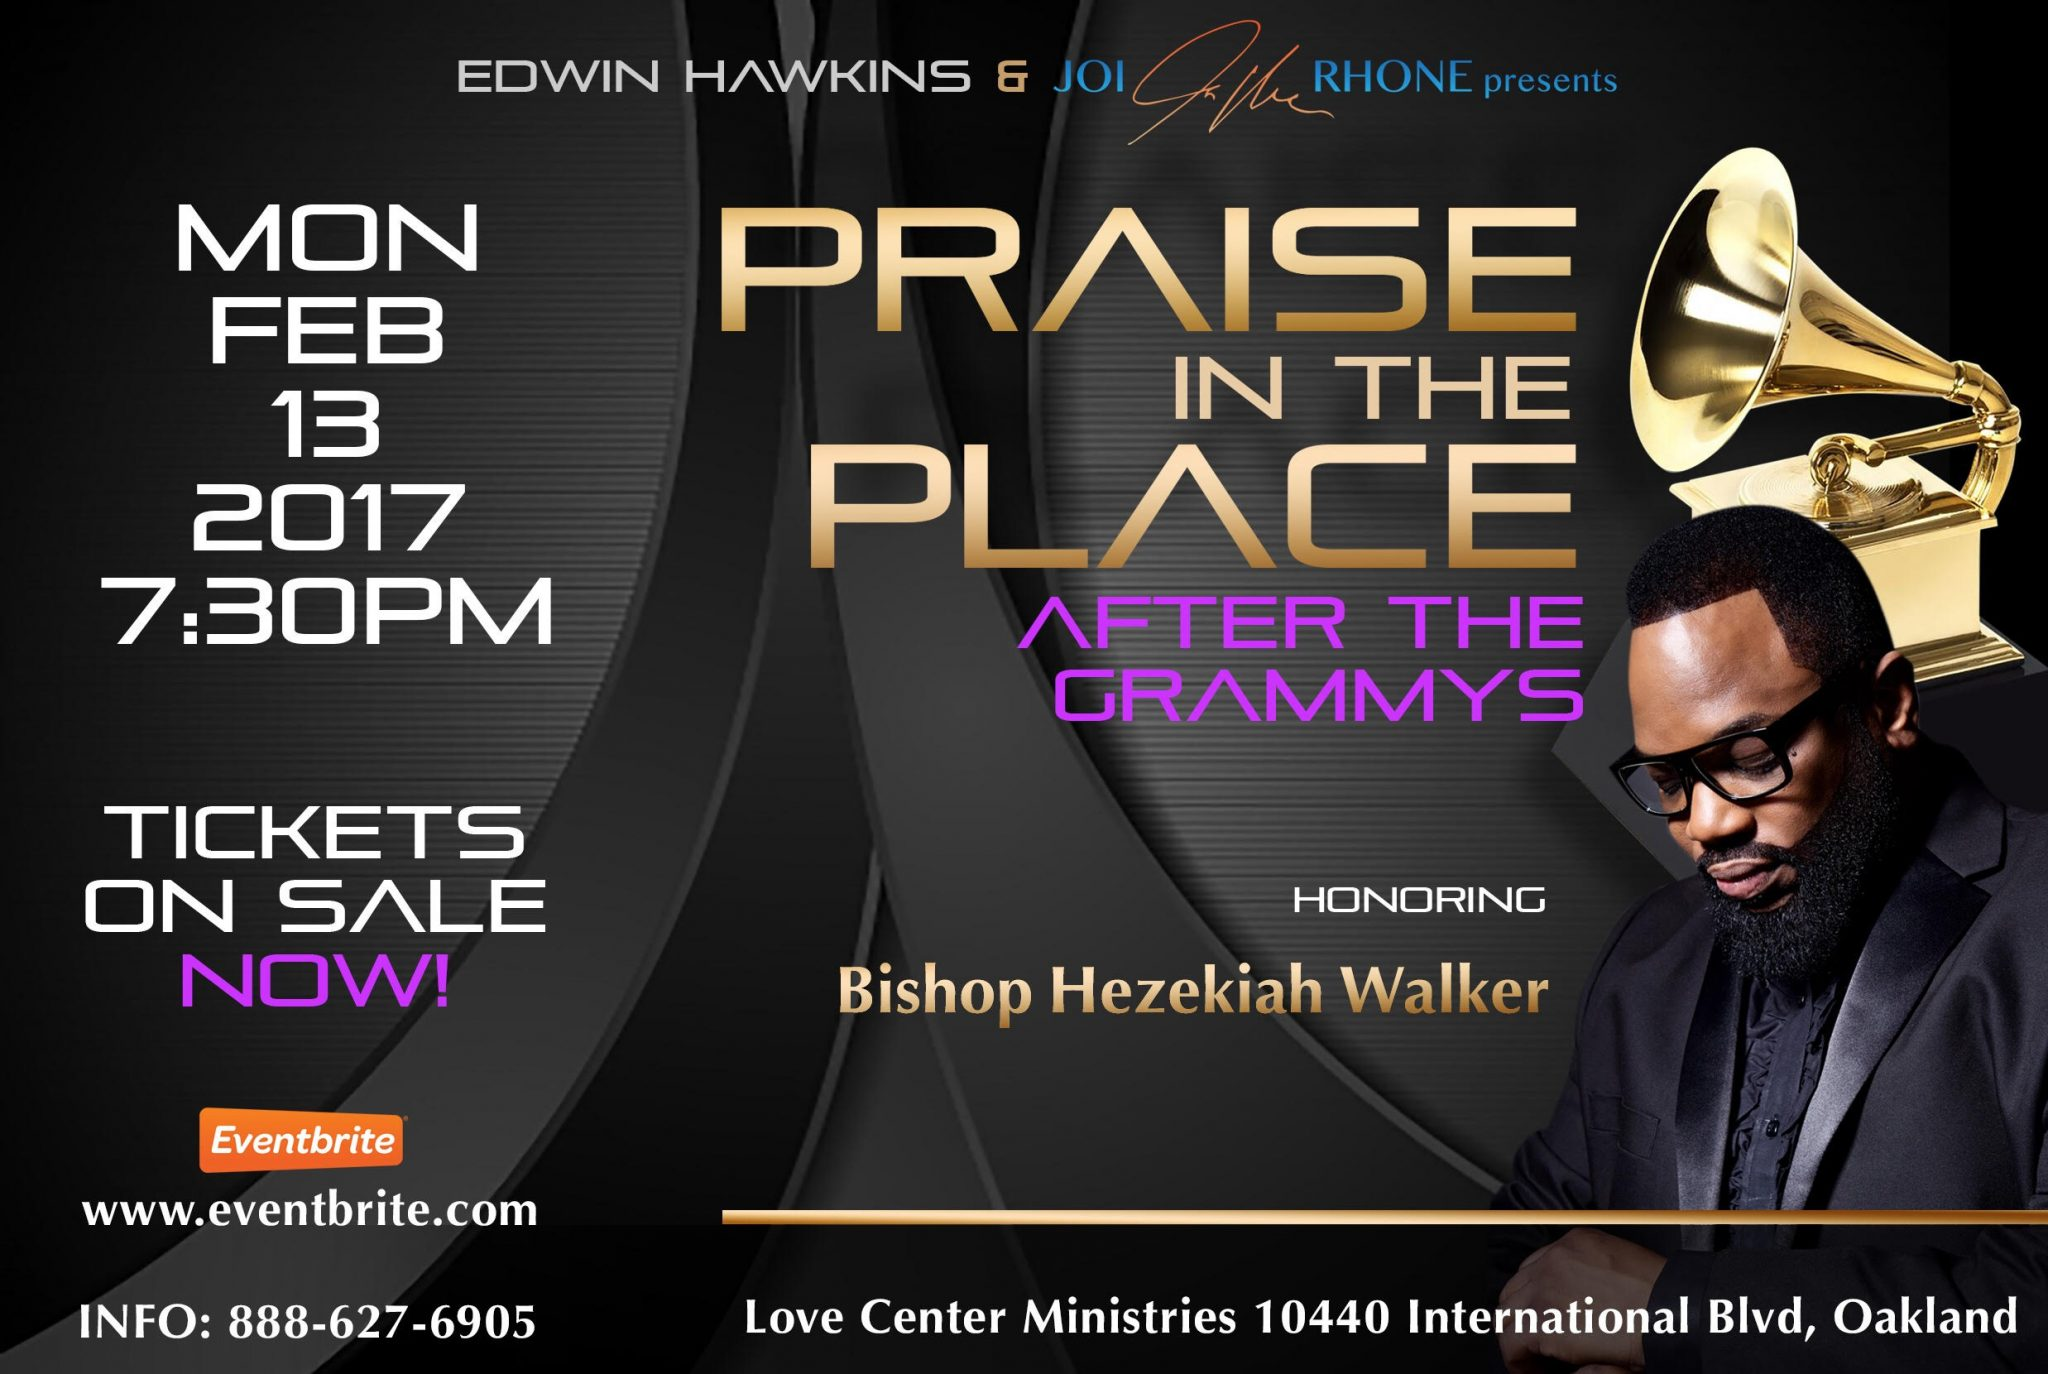 Praise In The Place: After the Grammys - Honoring Bishop Hezekiah Walker